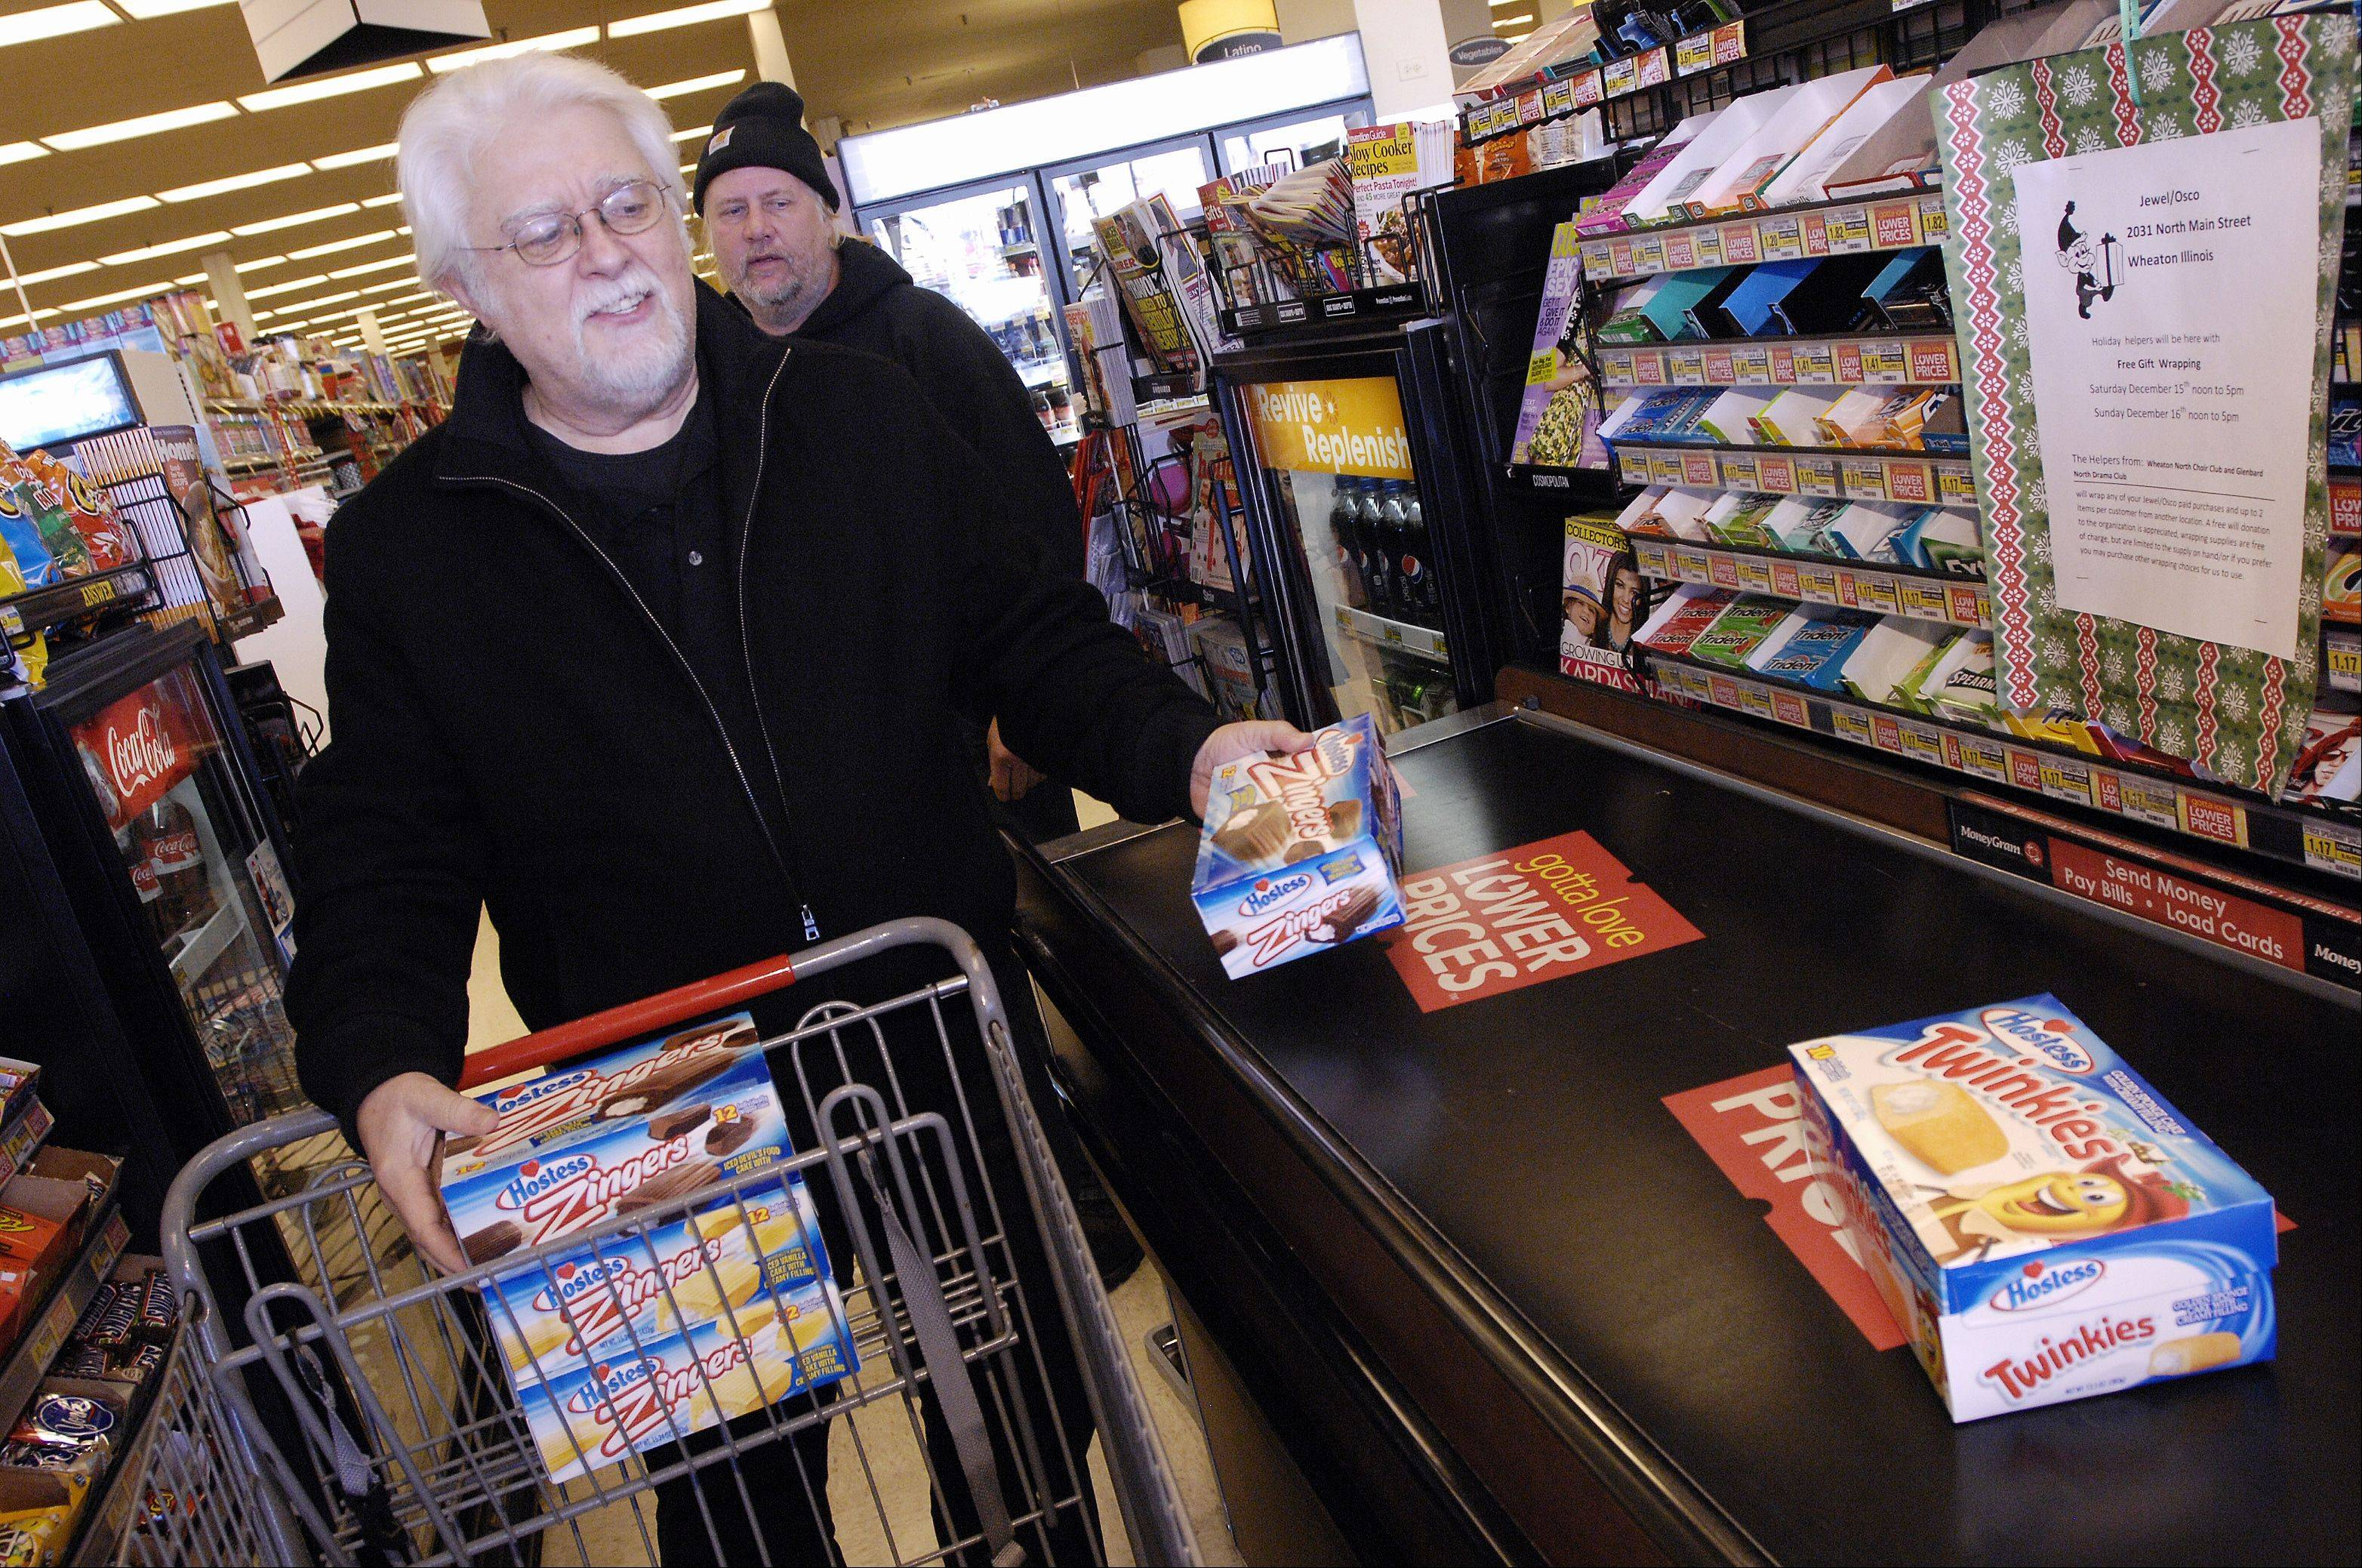 Customer Bob Gunnison of Carol Stream snatched up the last of the Twinkies at the Jewel-Osco in downtown Wheaton.